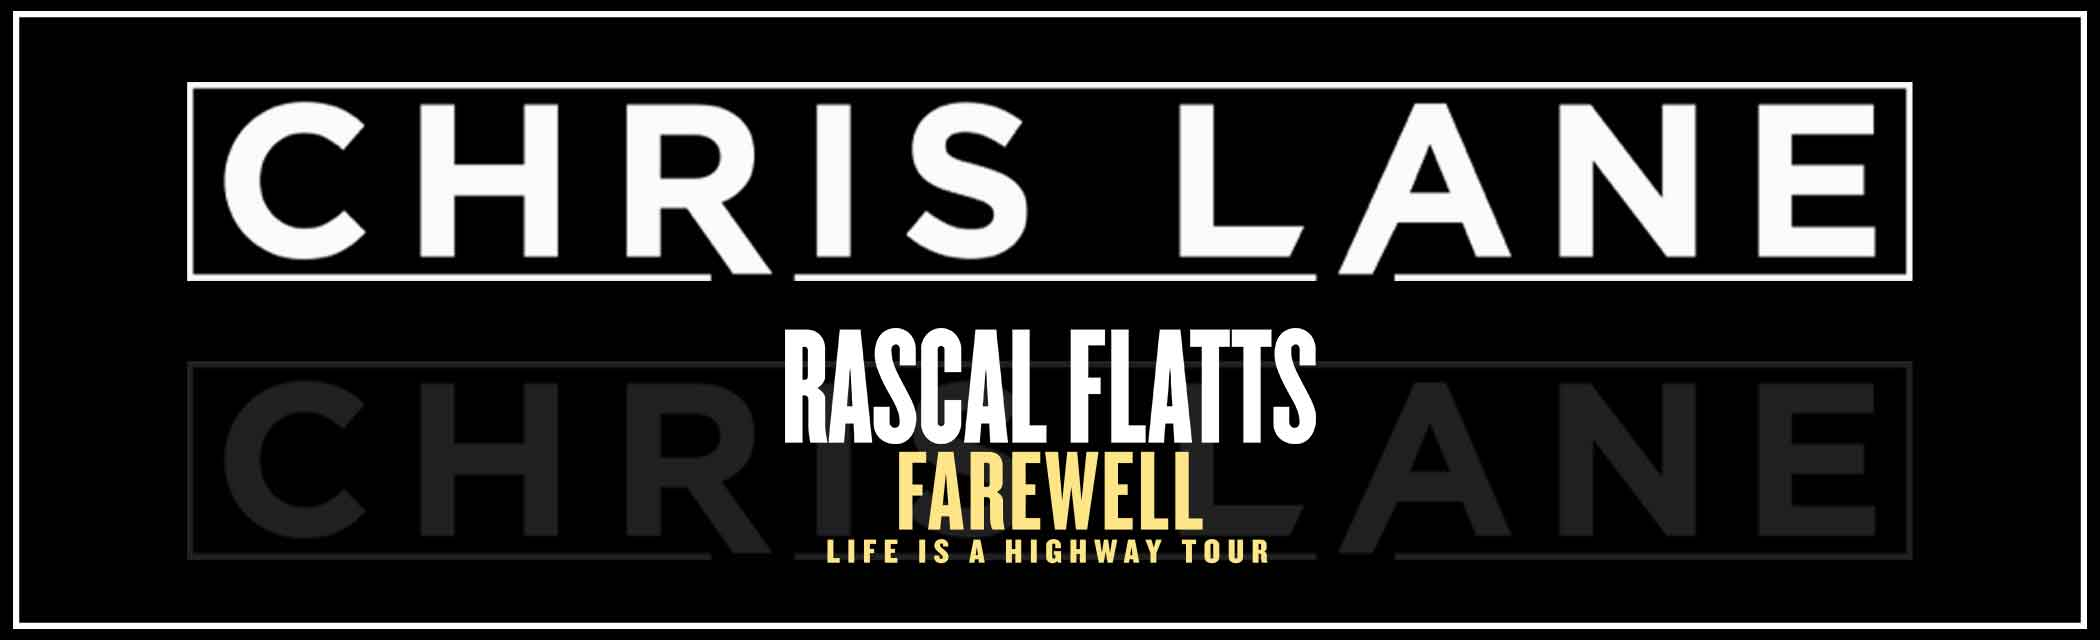 Farewell: Life Is A Highway Tour